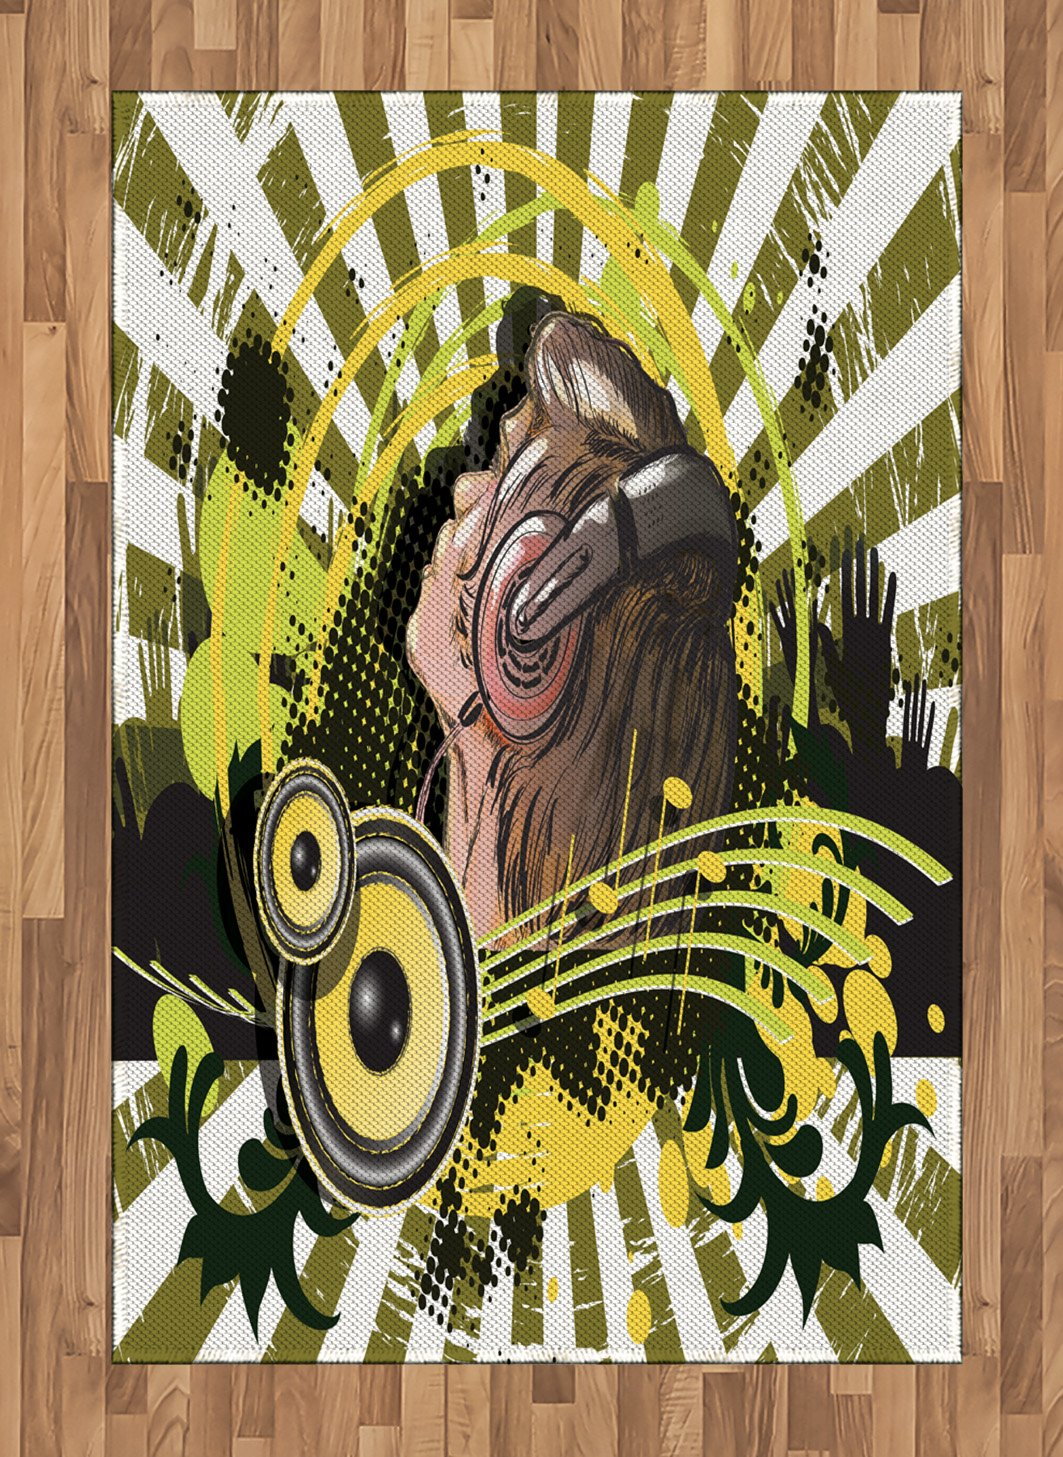 Music Area Rug by Lunarable, Abstract Illustration of a DJ Disco Headphone Dance Theme Striped Background Print, Flat Woven Accent Rug for Living Room Bedroom Dining Room, 4 x 6 FT, Green Brown